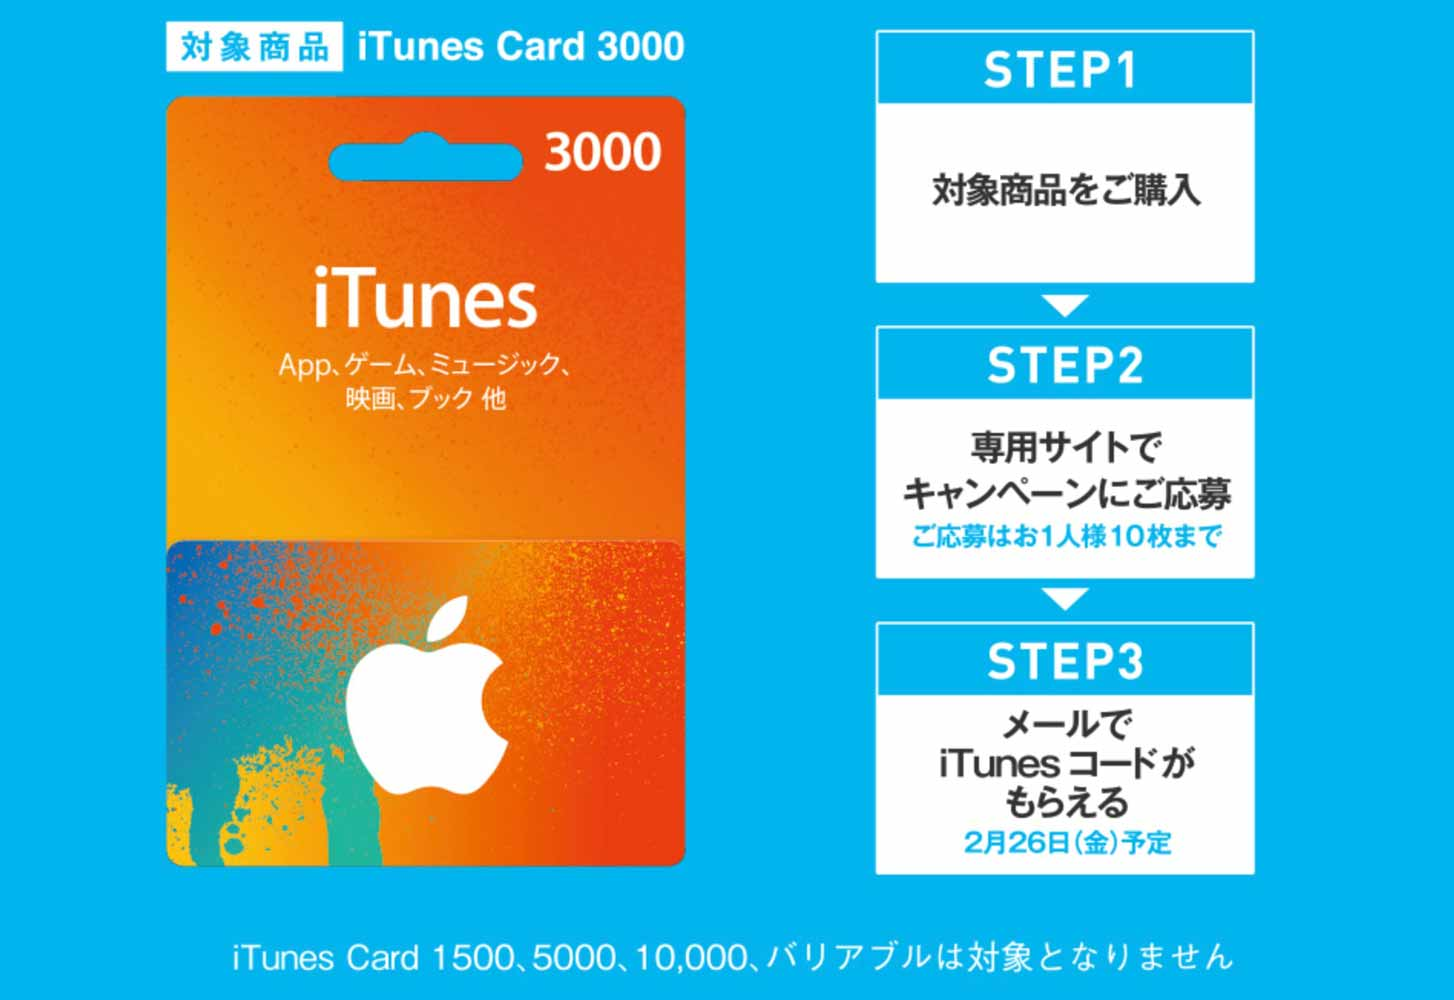 Itunescardfamima1